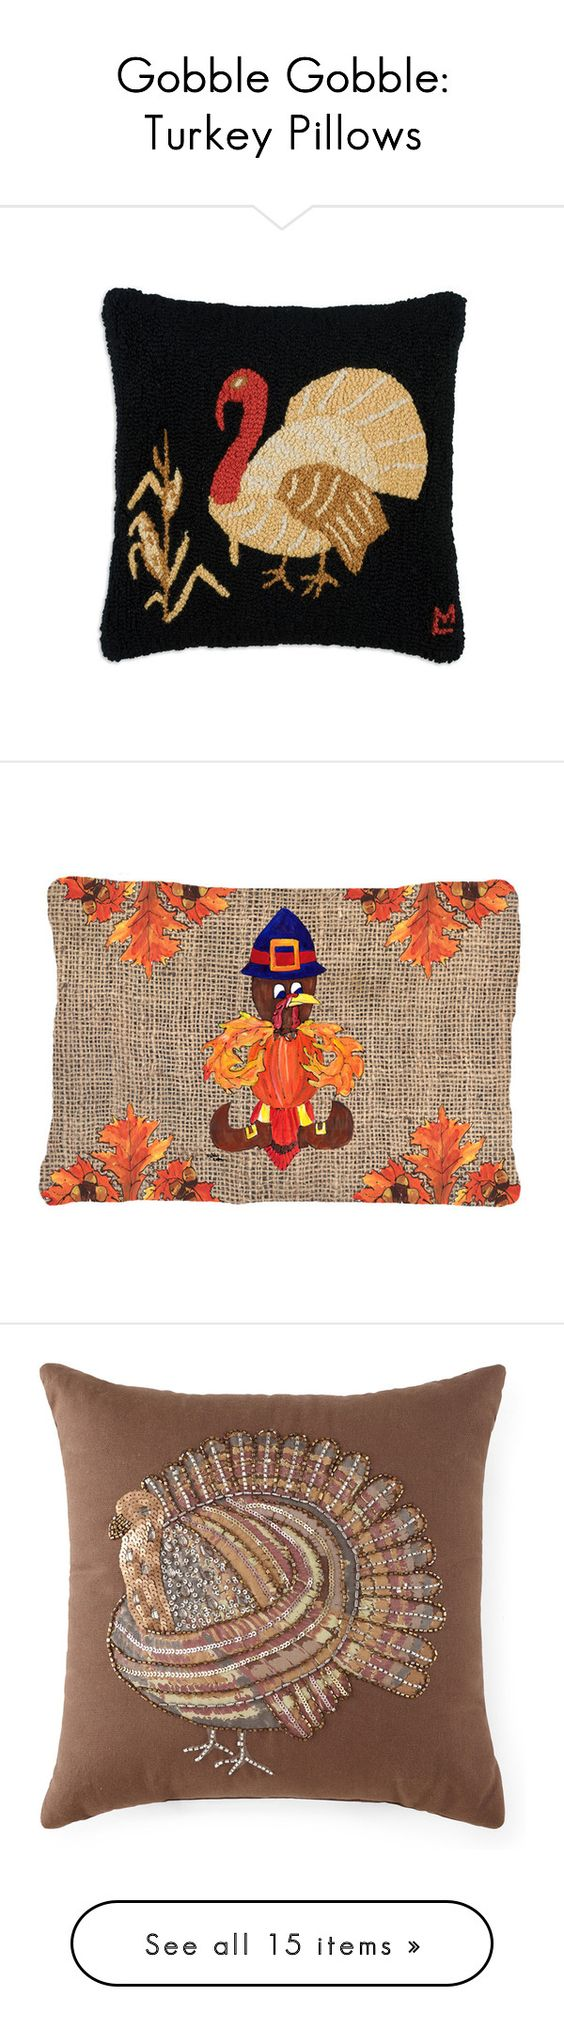 """Gobble Gobble: Turkey Pillows"" by polyvore-editorial ❤ liked on Polyvore featuring turkeypillows, home, outdoors, outdoor decor, outdoor thanksgiving decor, fleur de lis outdoor decor, fleur de lis garden decor, home decor, throw pillows and jcpenney home"